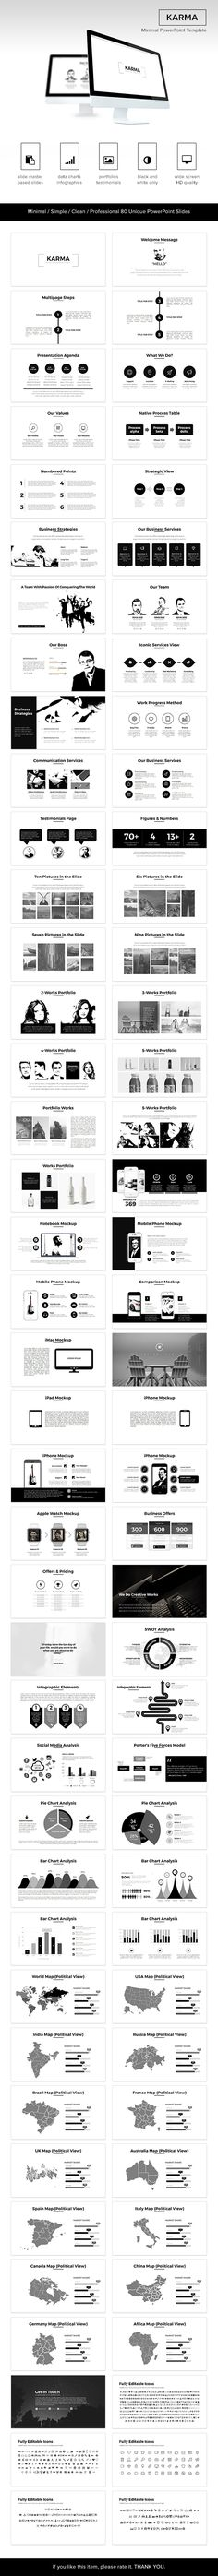 Karma Minimal PowerPoint Template. Download here: http://graphicriver.net/item/karma-minimal-powerpoint-template/15652378?ref=ksioks